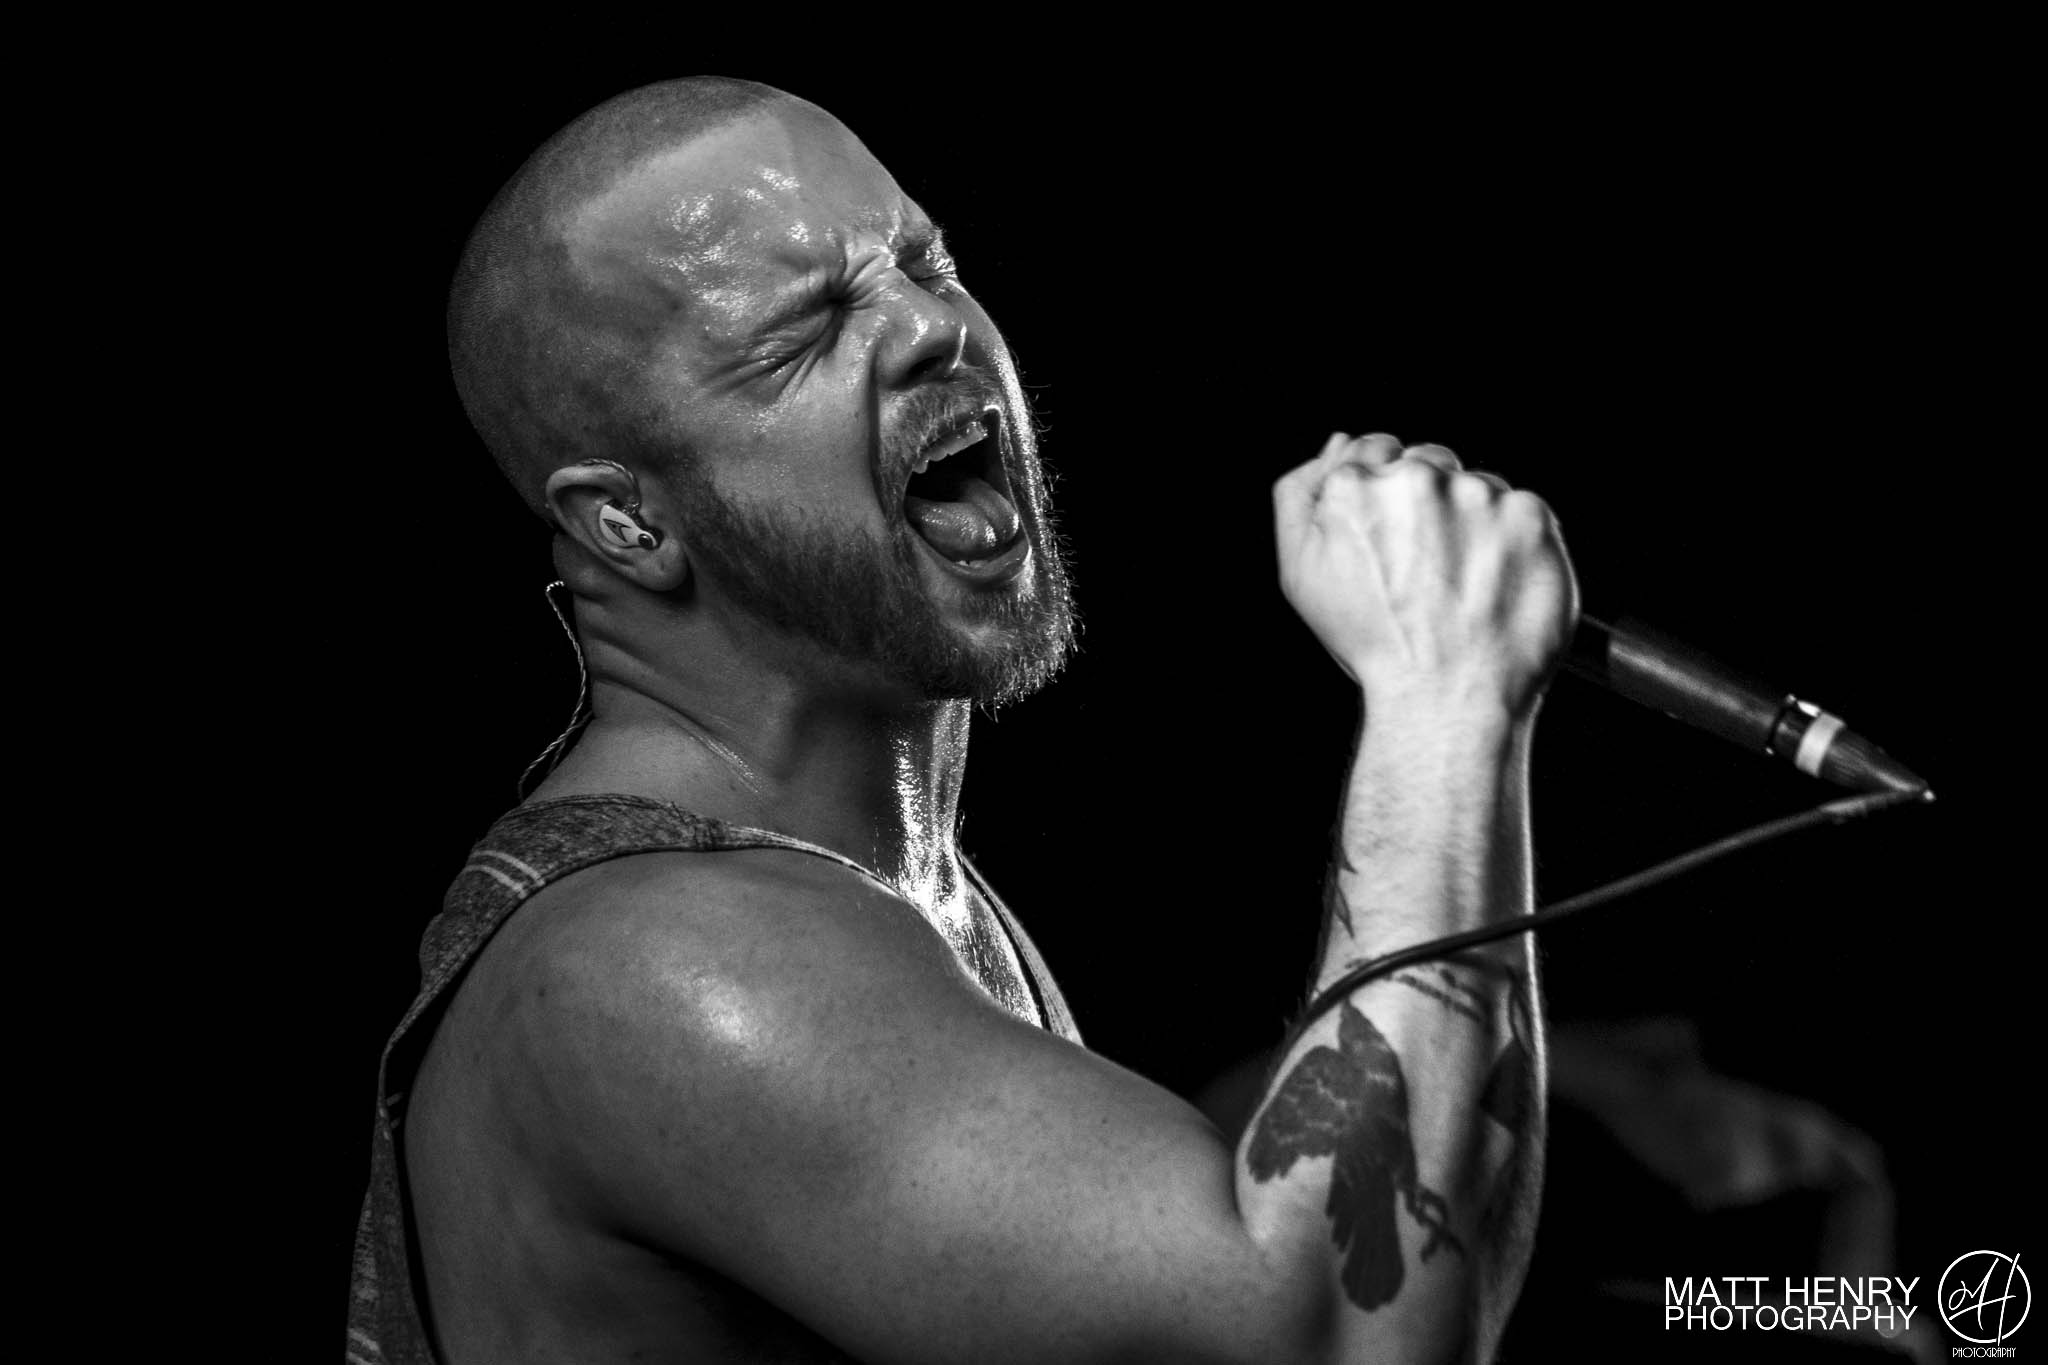 PROTEST THE HERO - 19th April 2017The Kings Arms Tavern, Auckland, New Zealand.Review by Mark Derricutt. Photography by Matt Henry Mendonca.